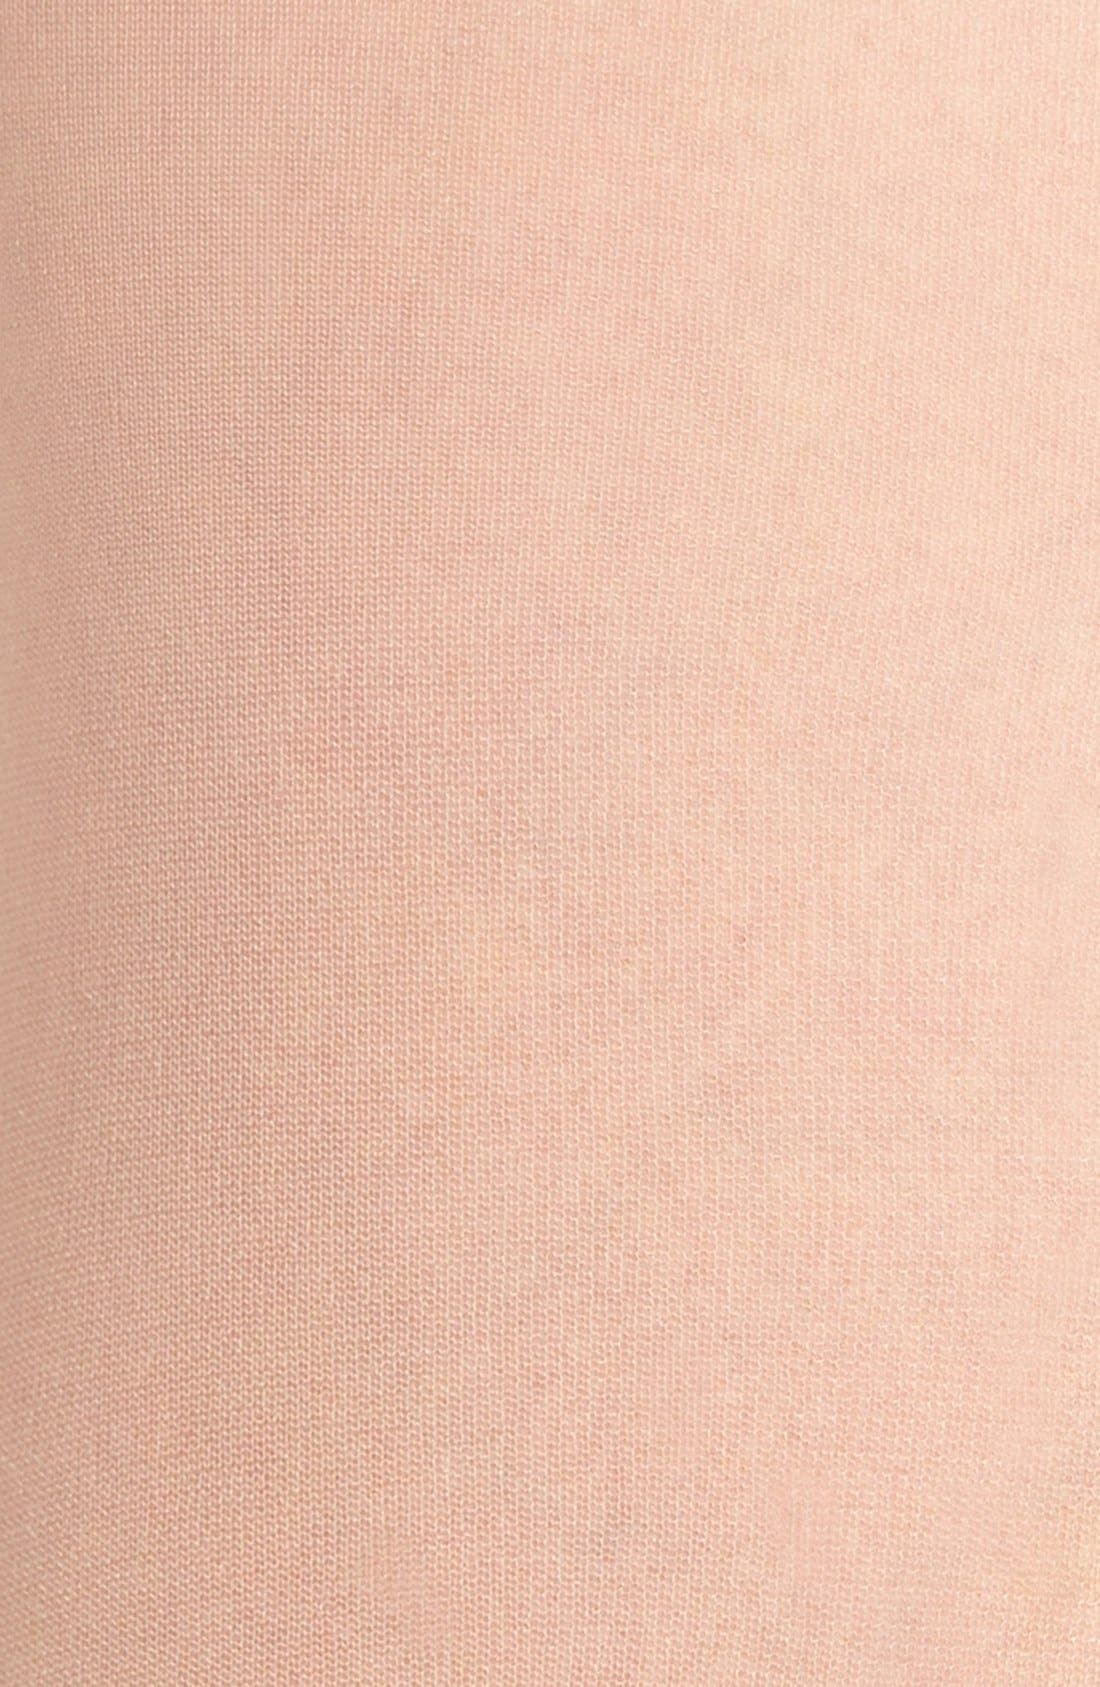 Waist Control Sheer Pantyhose,                             Alternate thumbnail 2, color,                             Light Nude